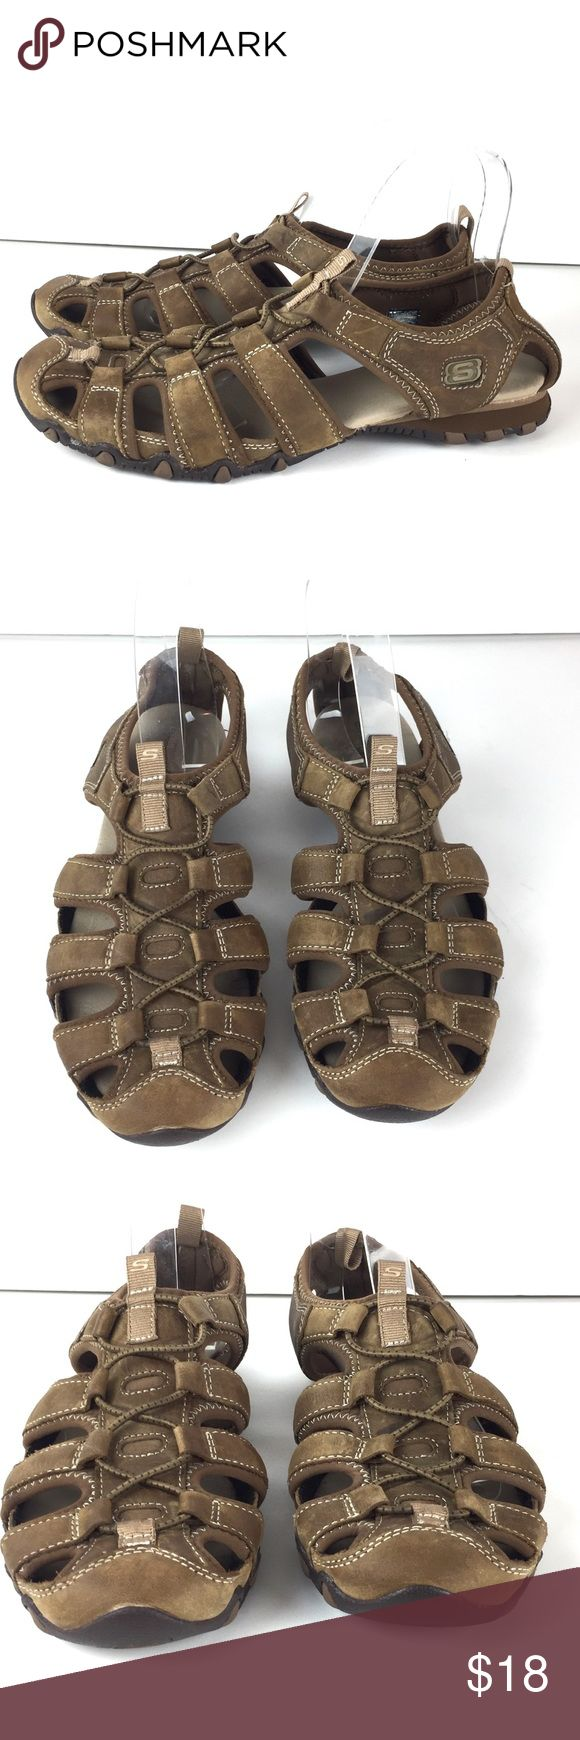 """Skechers Bikers Excursion Shoes Sport Sandal 10 Skechers Bikers Excursion Shoes  Sport Hiking sandals, Water-shoes  Women's size 10 Heel to toe approx 10"""" Heel is flat Nice preowned condition Skechers Shoes Sandals"""